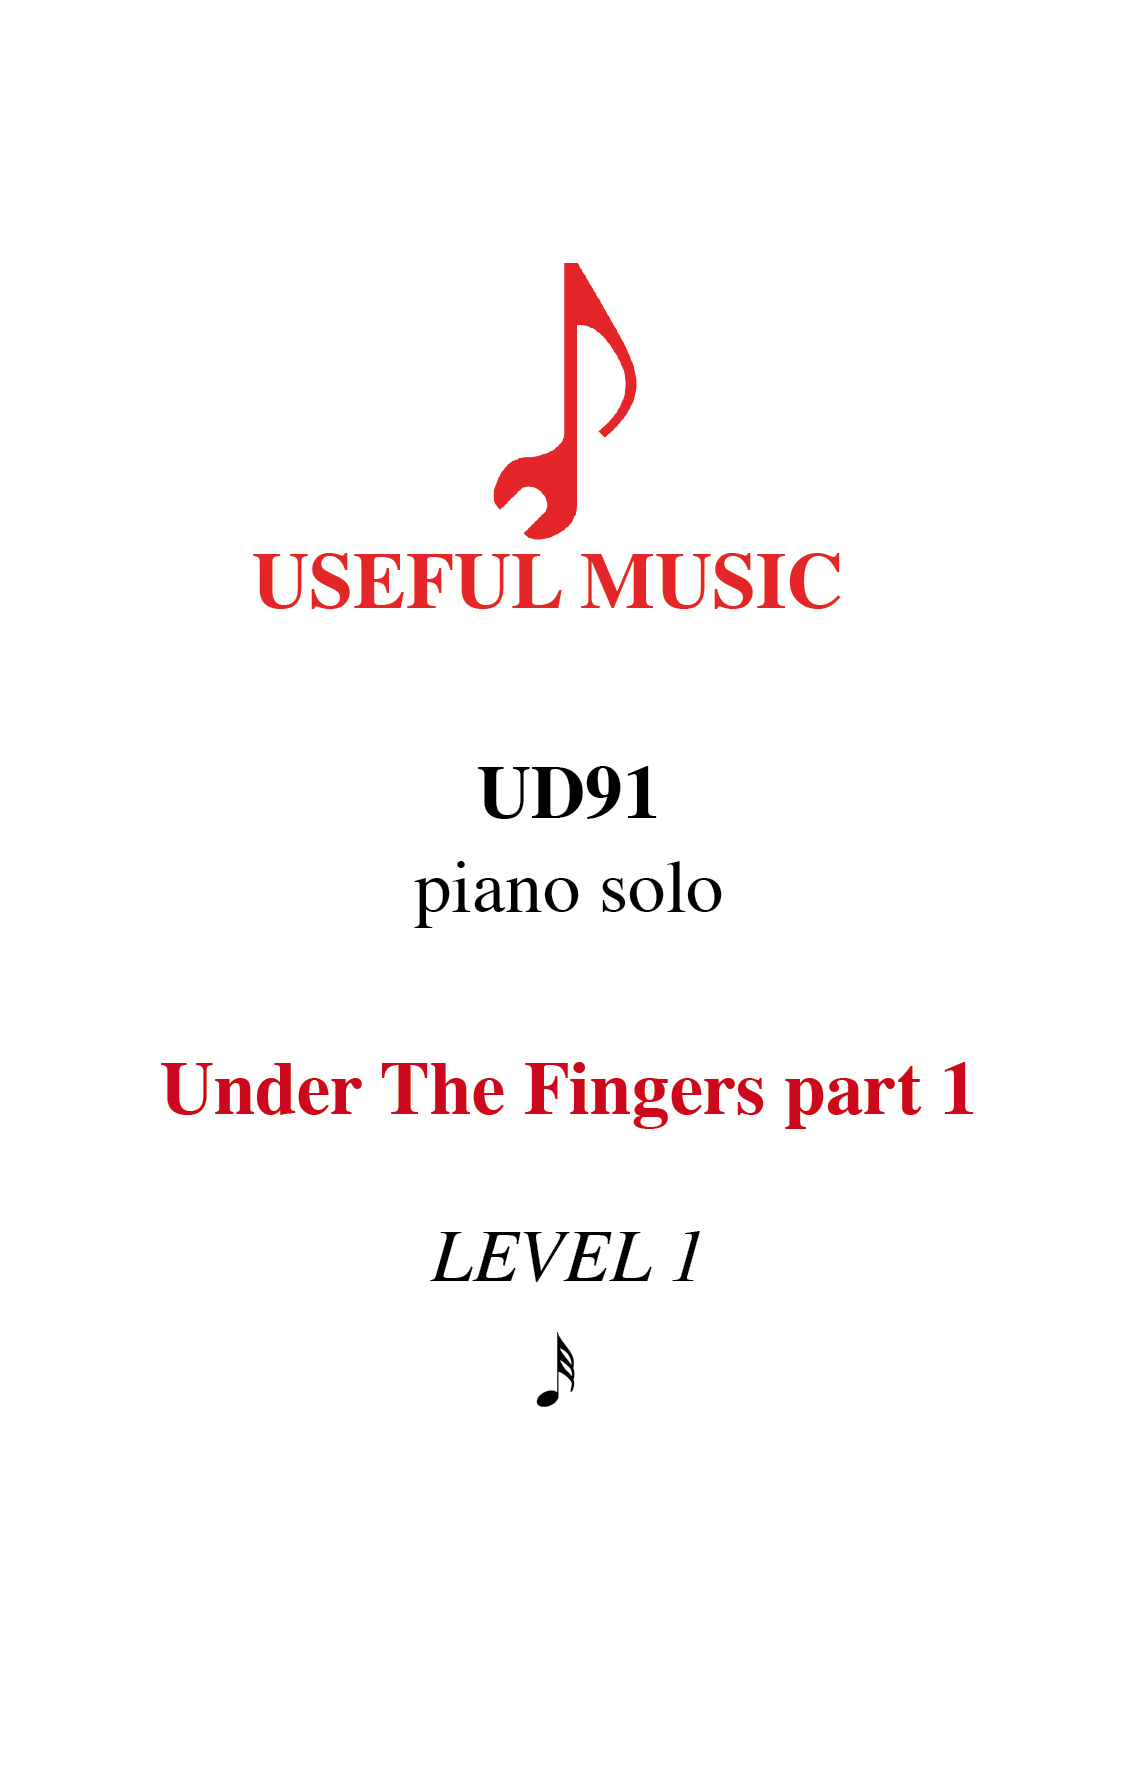 Under the Fingers part 1